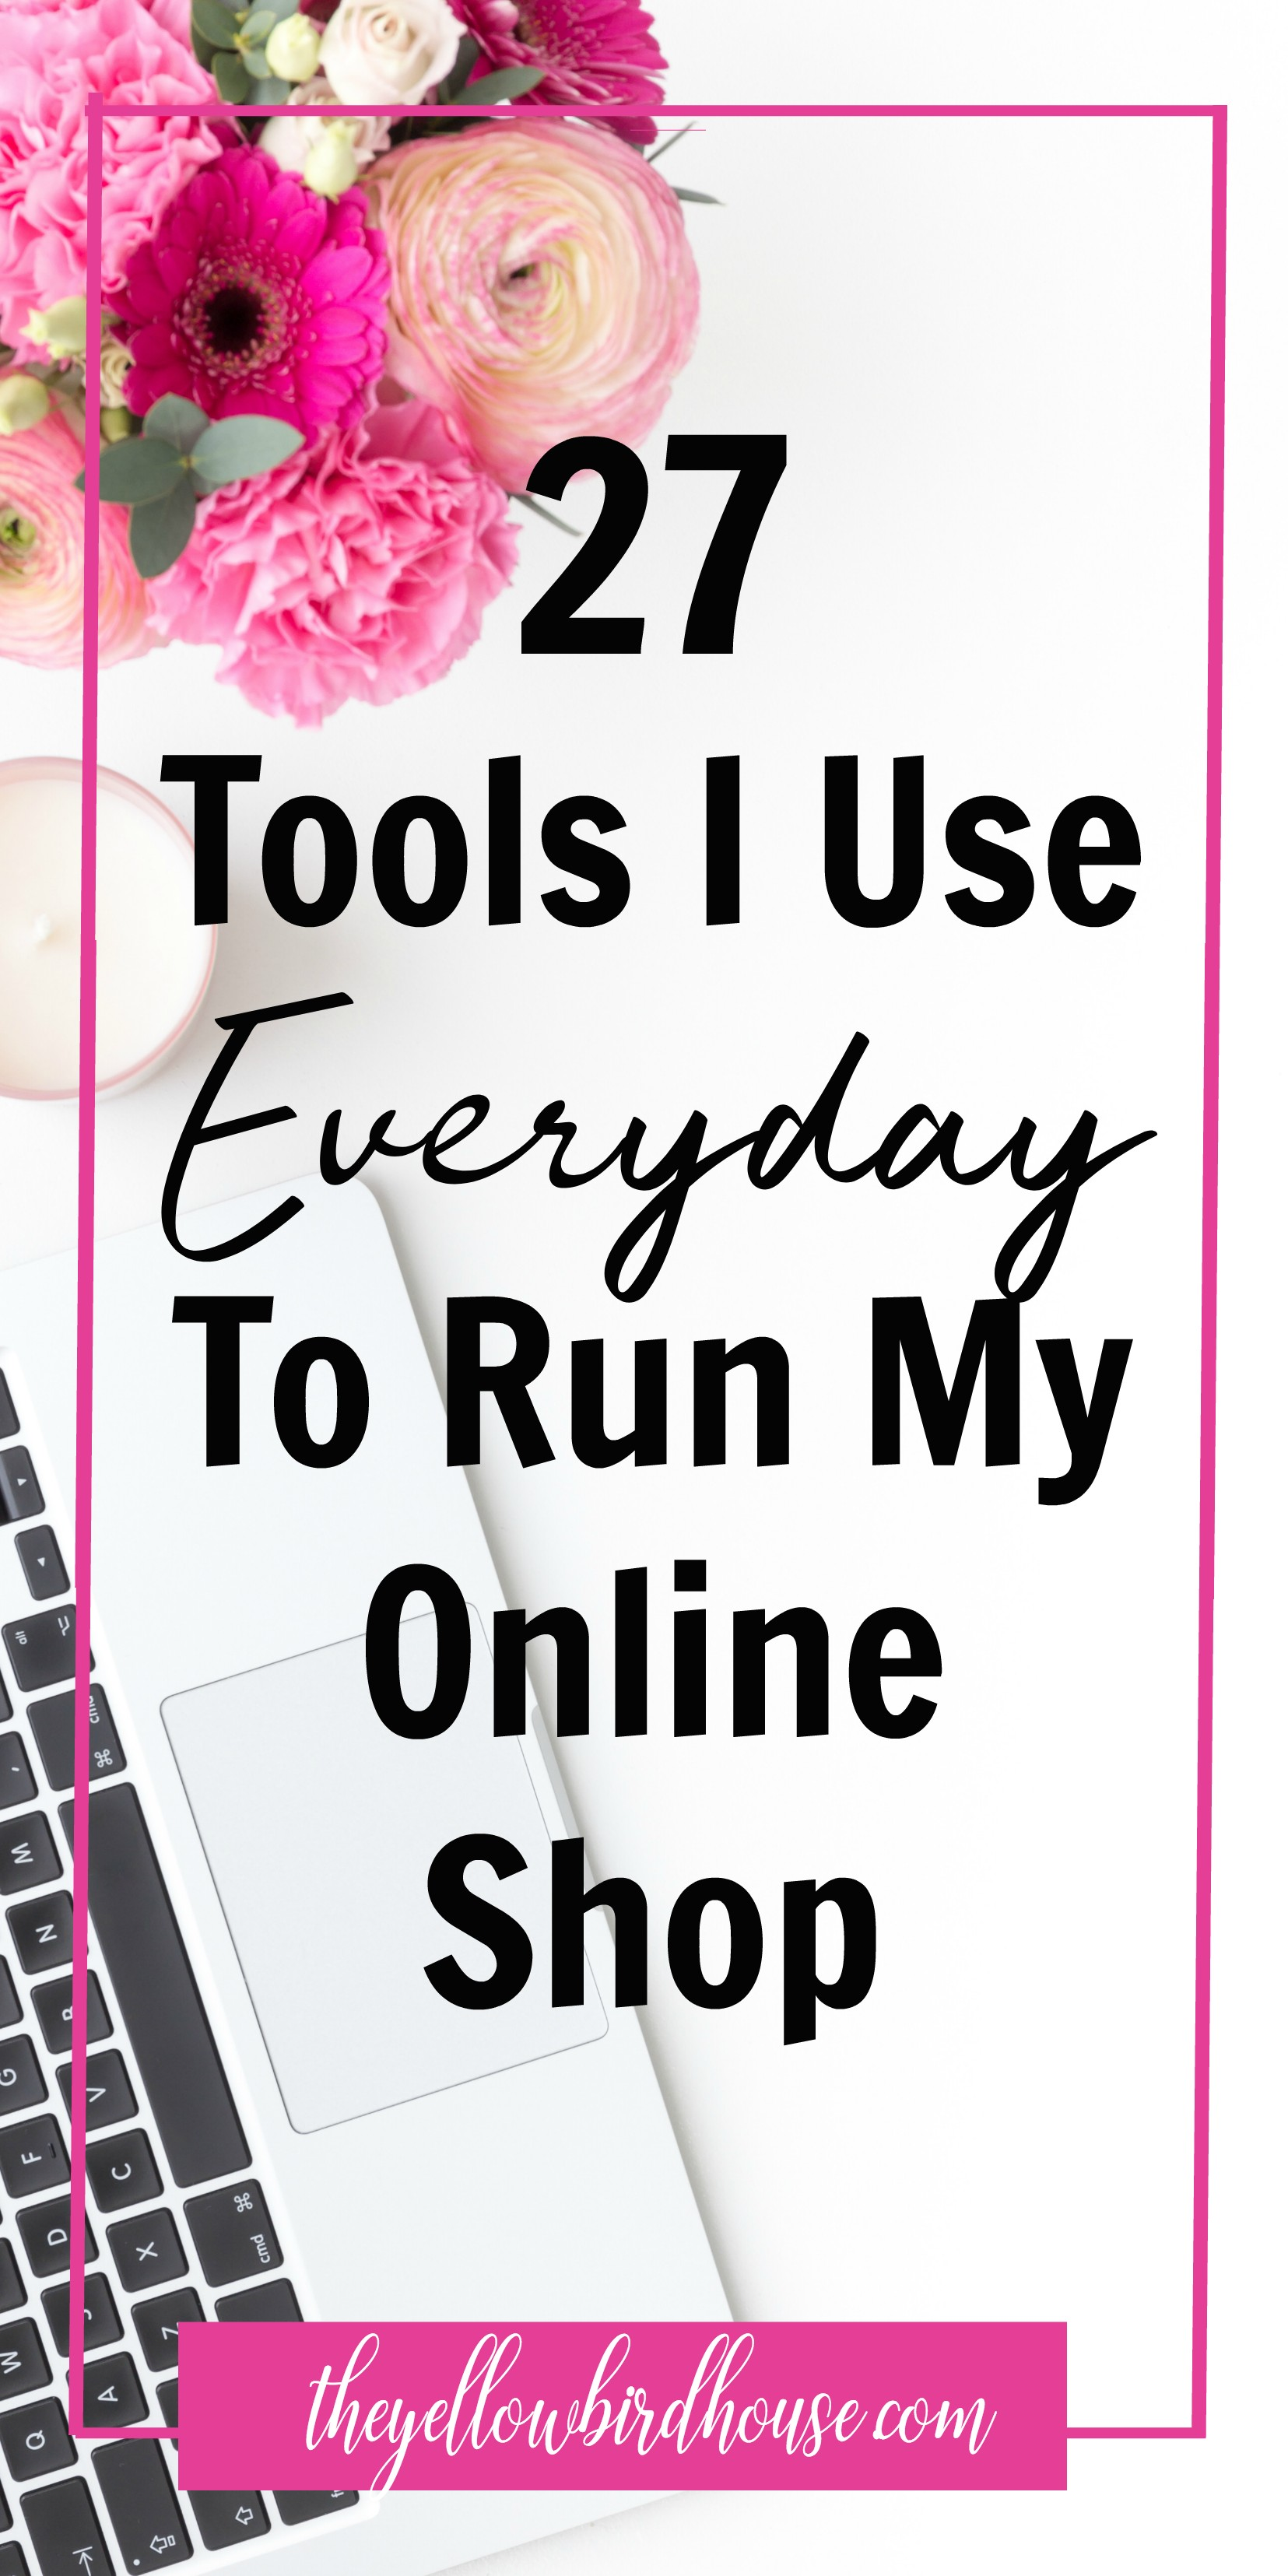 27 of the best tools and resources for running an online business. Tools for Etsy shop owners. Resources for creative entrepreneurs and shop owners. Free tools for running a small business.